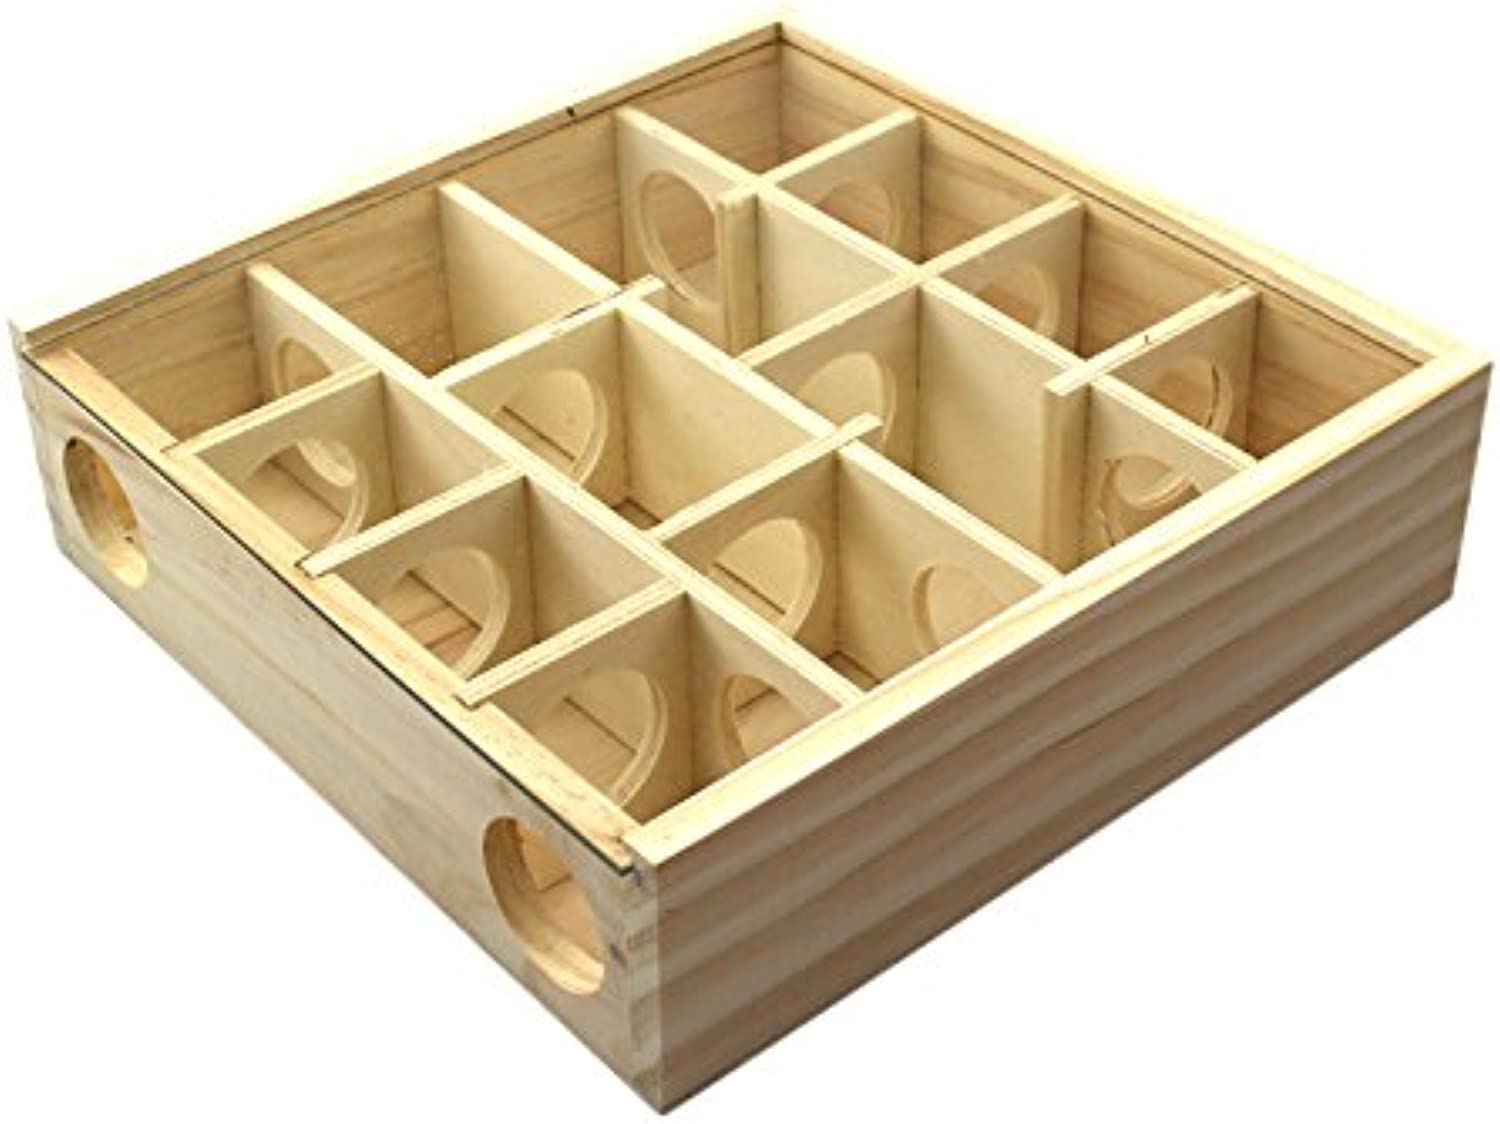 Stock Show 1Pc Wooden Maze Tunnel Toy with Glass Glass Glass